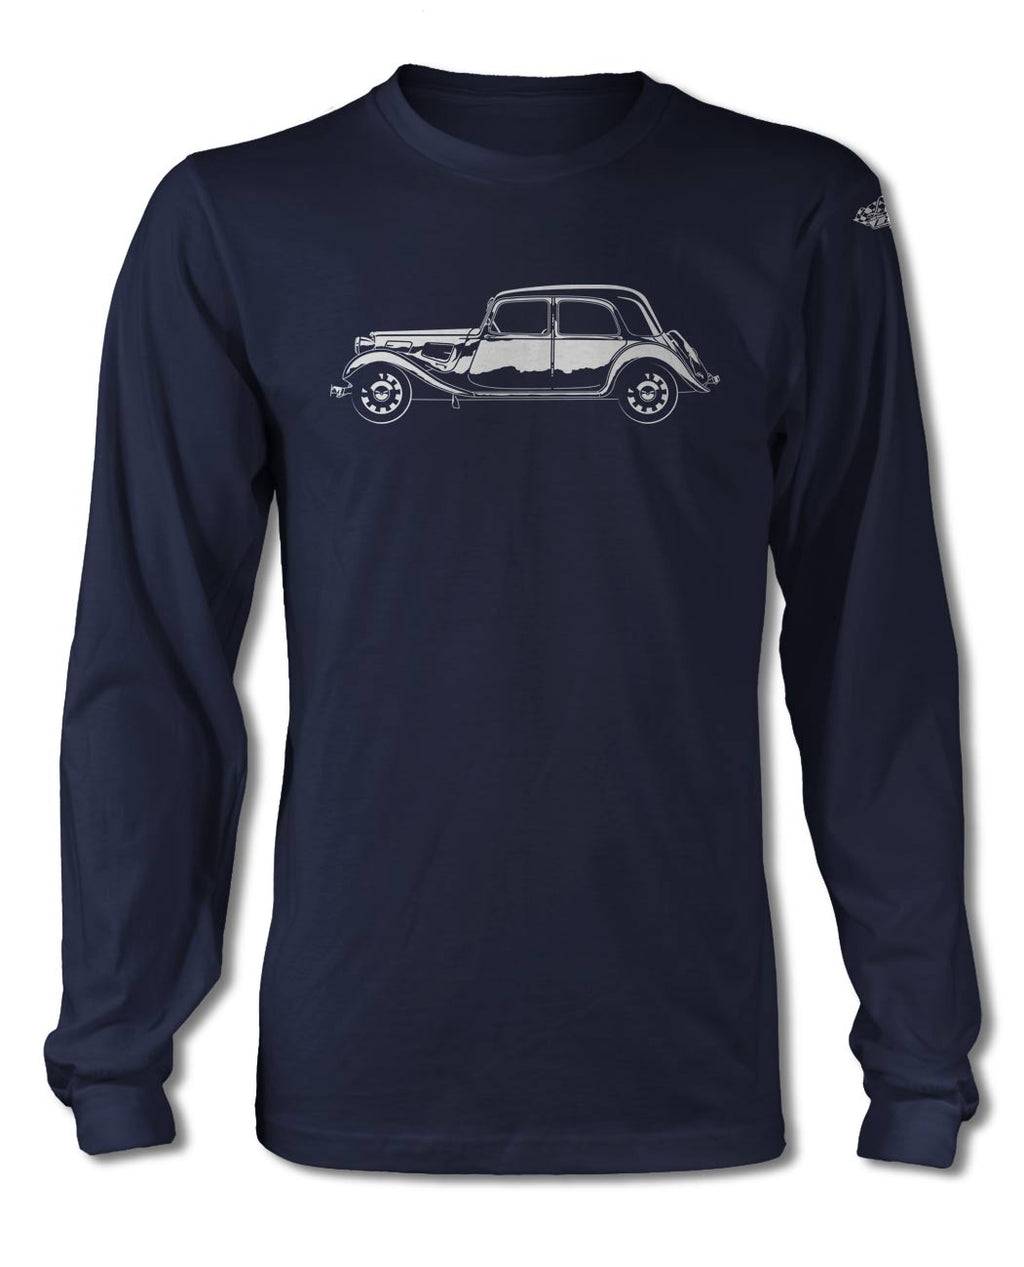 Citroen Traction Avant 11BL 1934 – 1957 T-Shirt - Long Sleeves - Side View